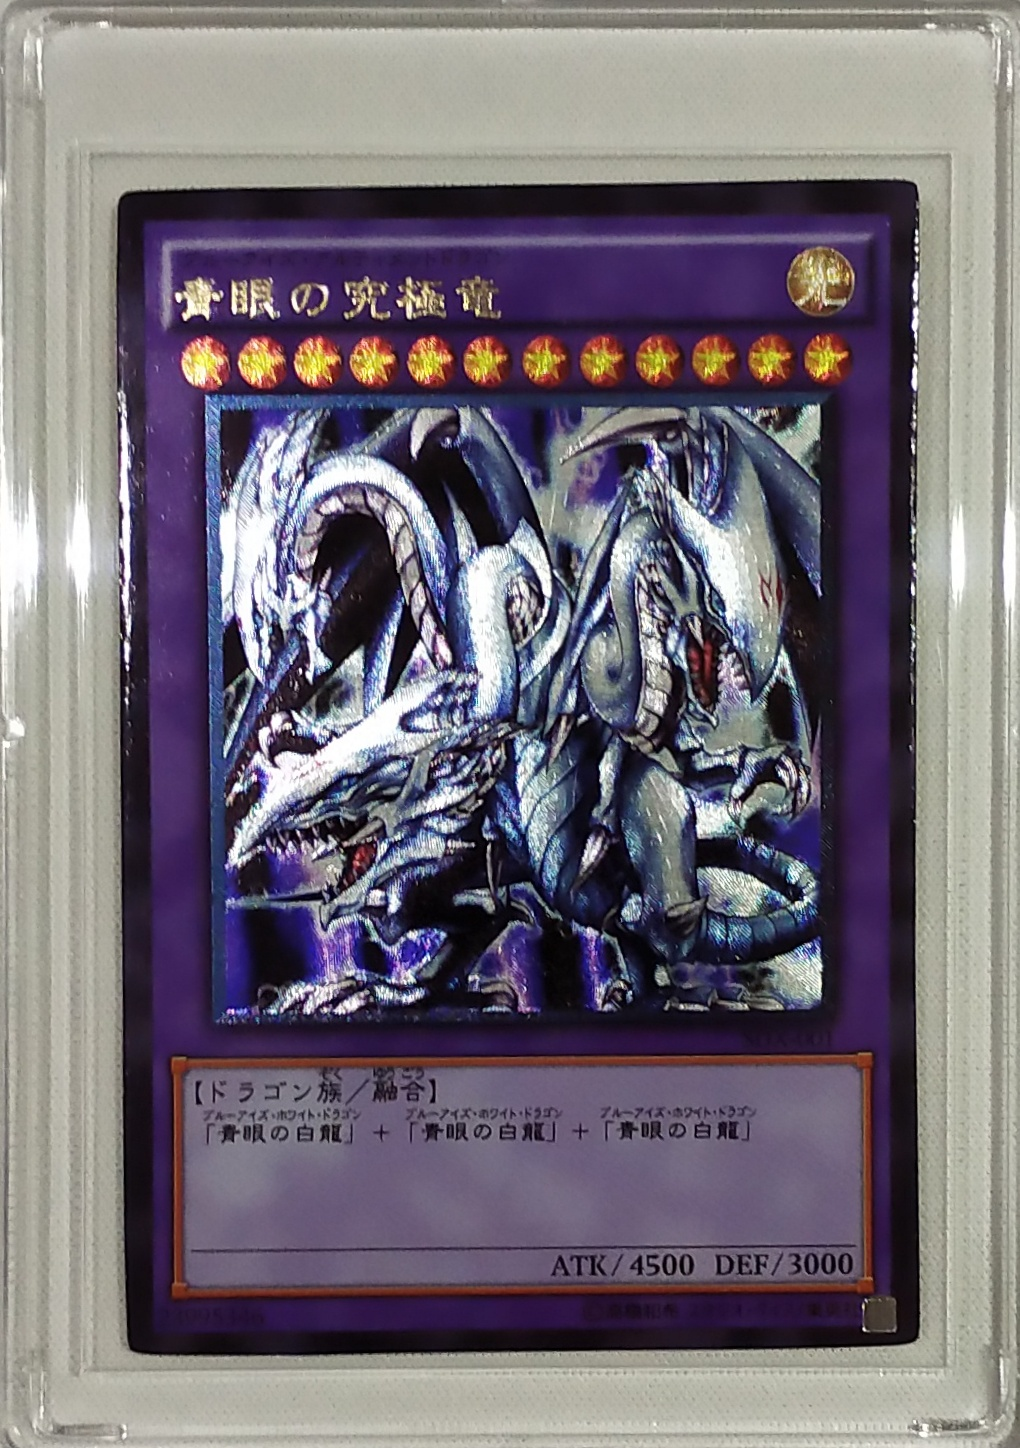 Yu Gi Oh yeux bleus ultime DRAGON bricolage jouets loisirs loisirs de Collection jeu Collection Anime cartes